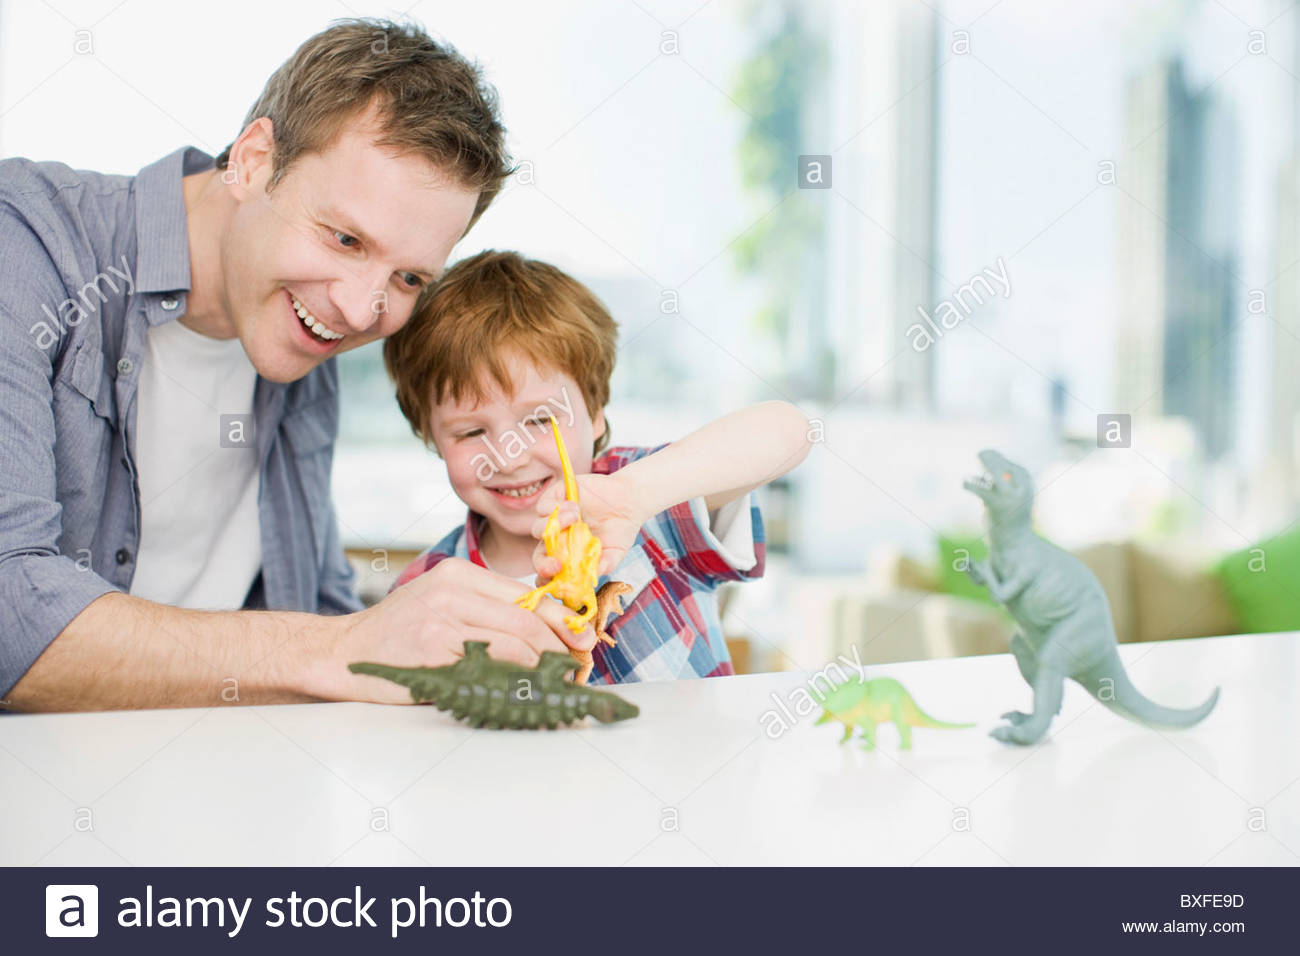 Father and son playing with plastic dinosaurs - Stock Image